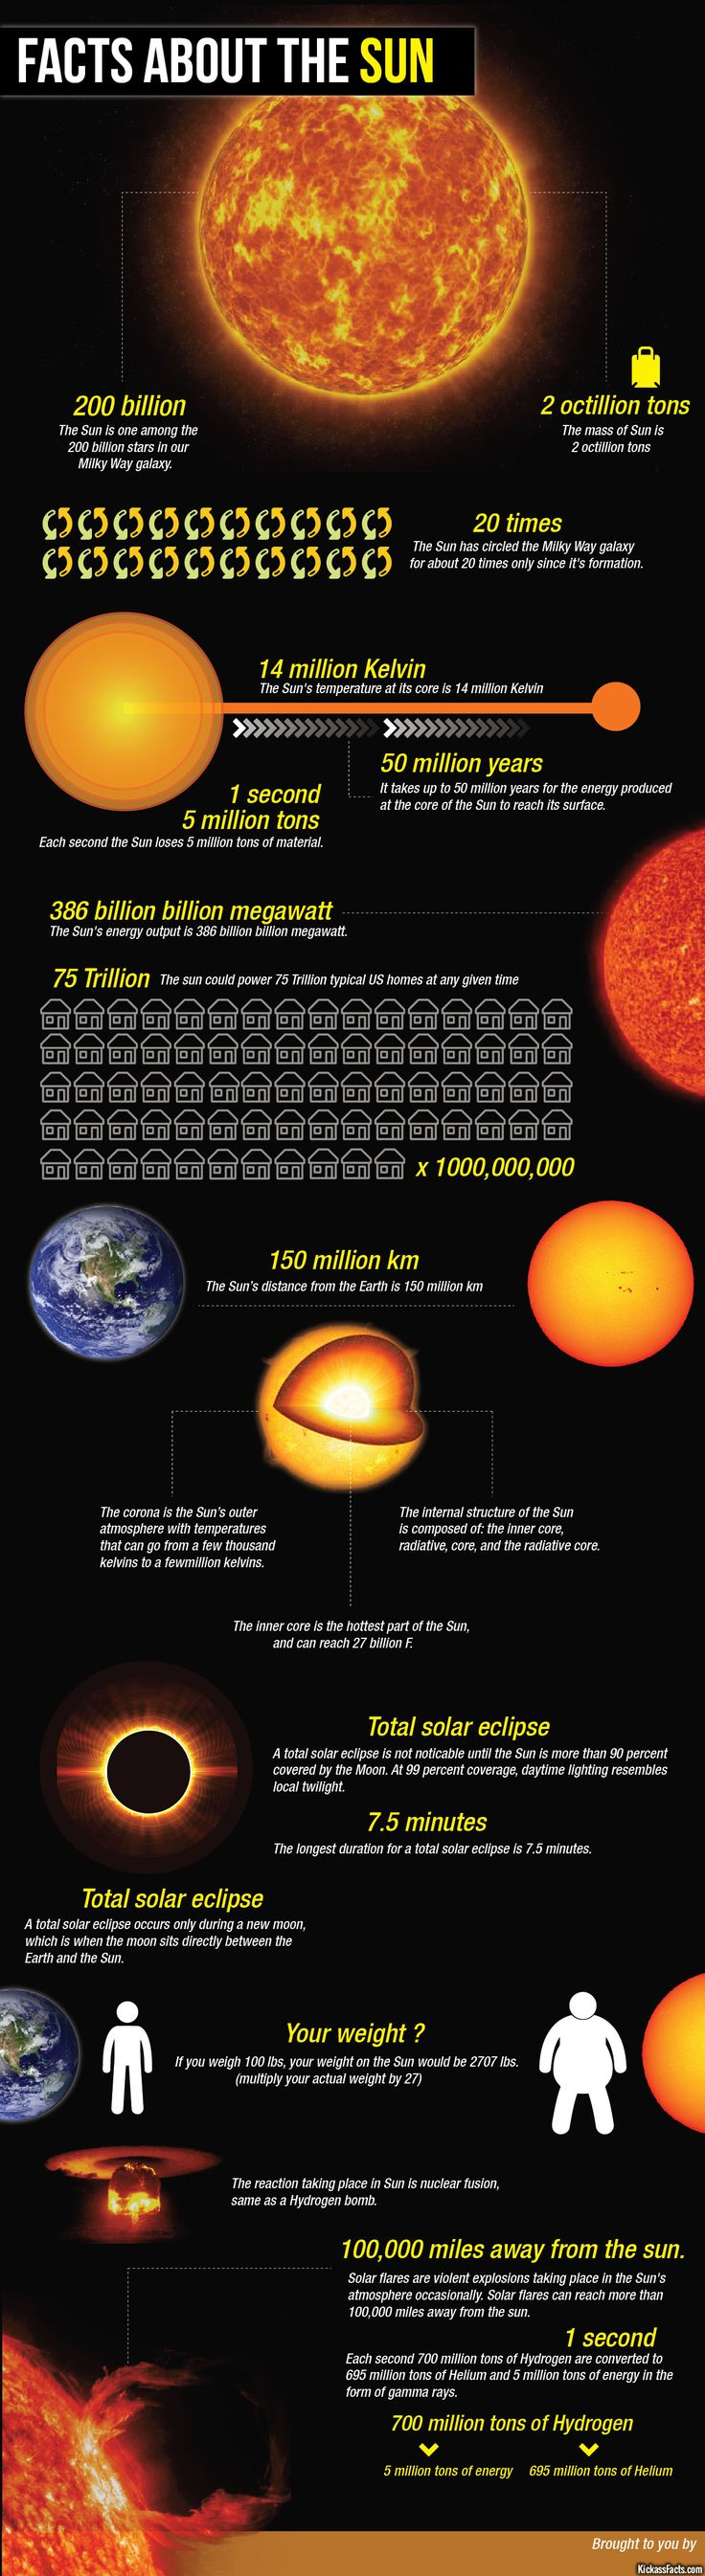 facts about the sun - 2 octillion tons!   - infographic